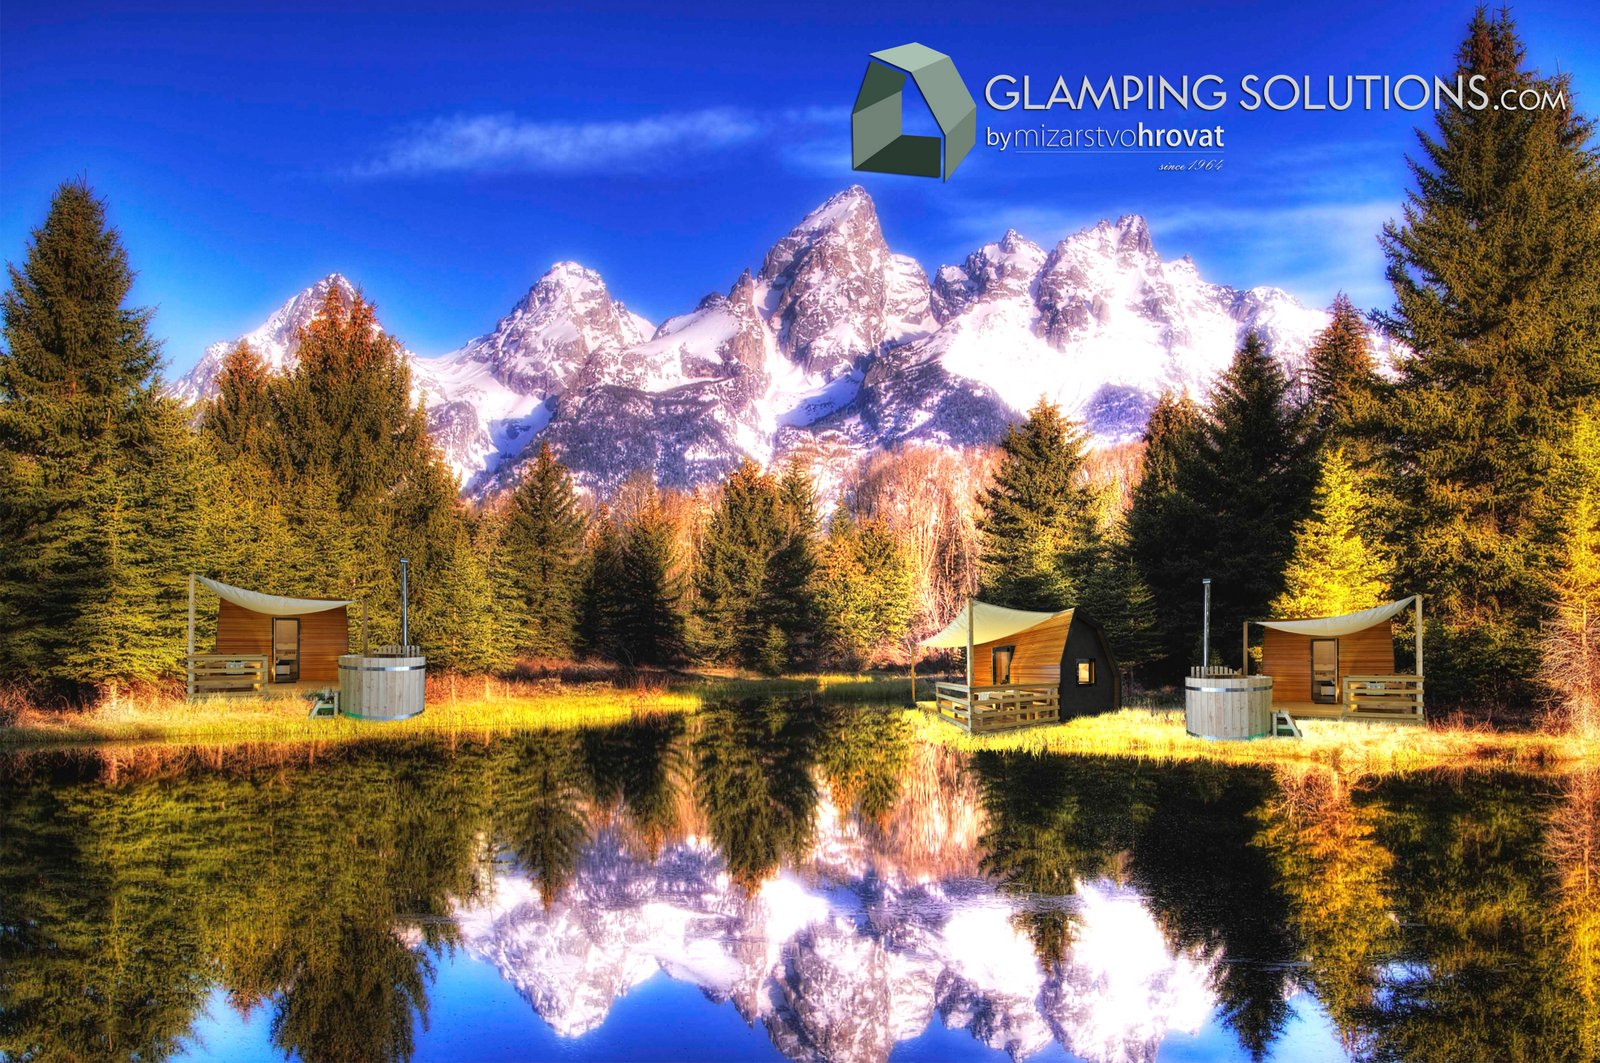 10 pieces of advice on how to improve your glamping destination?